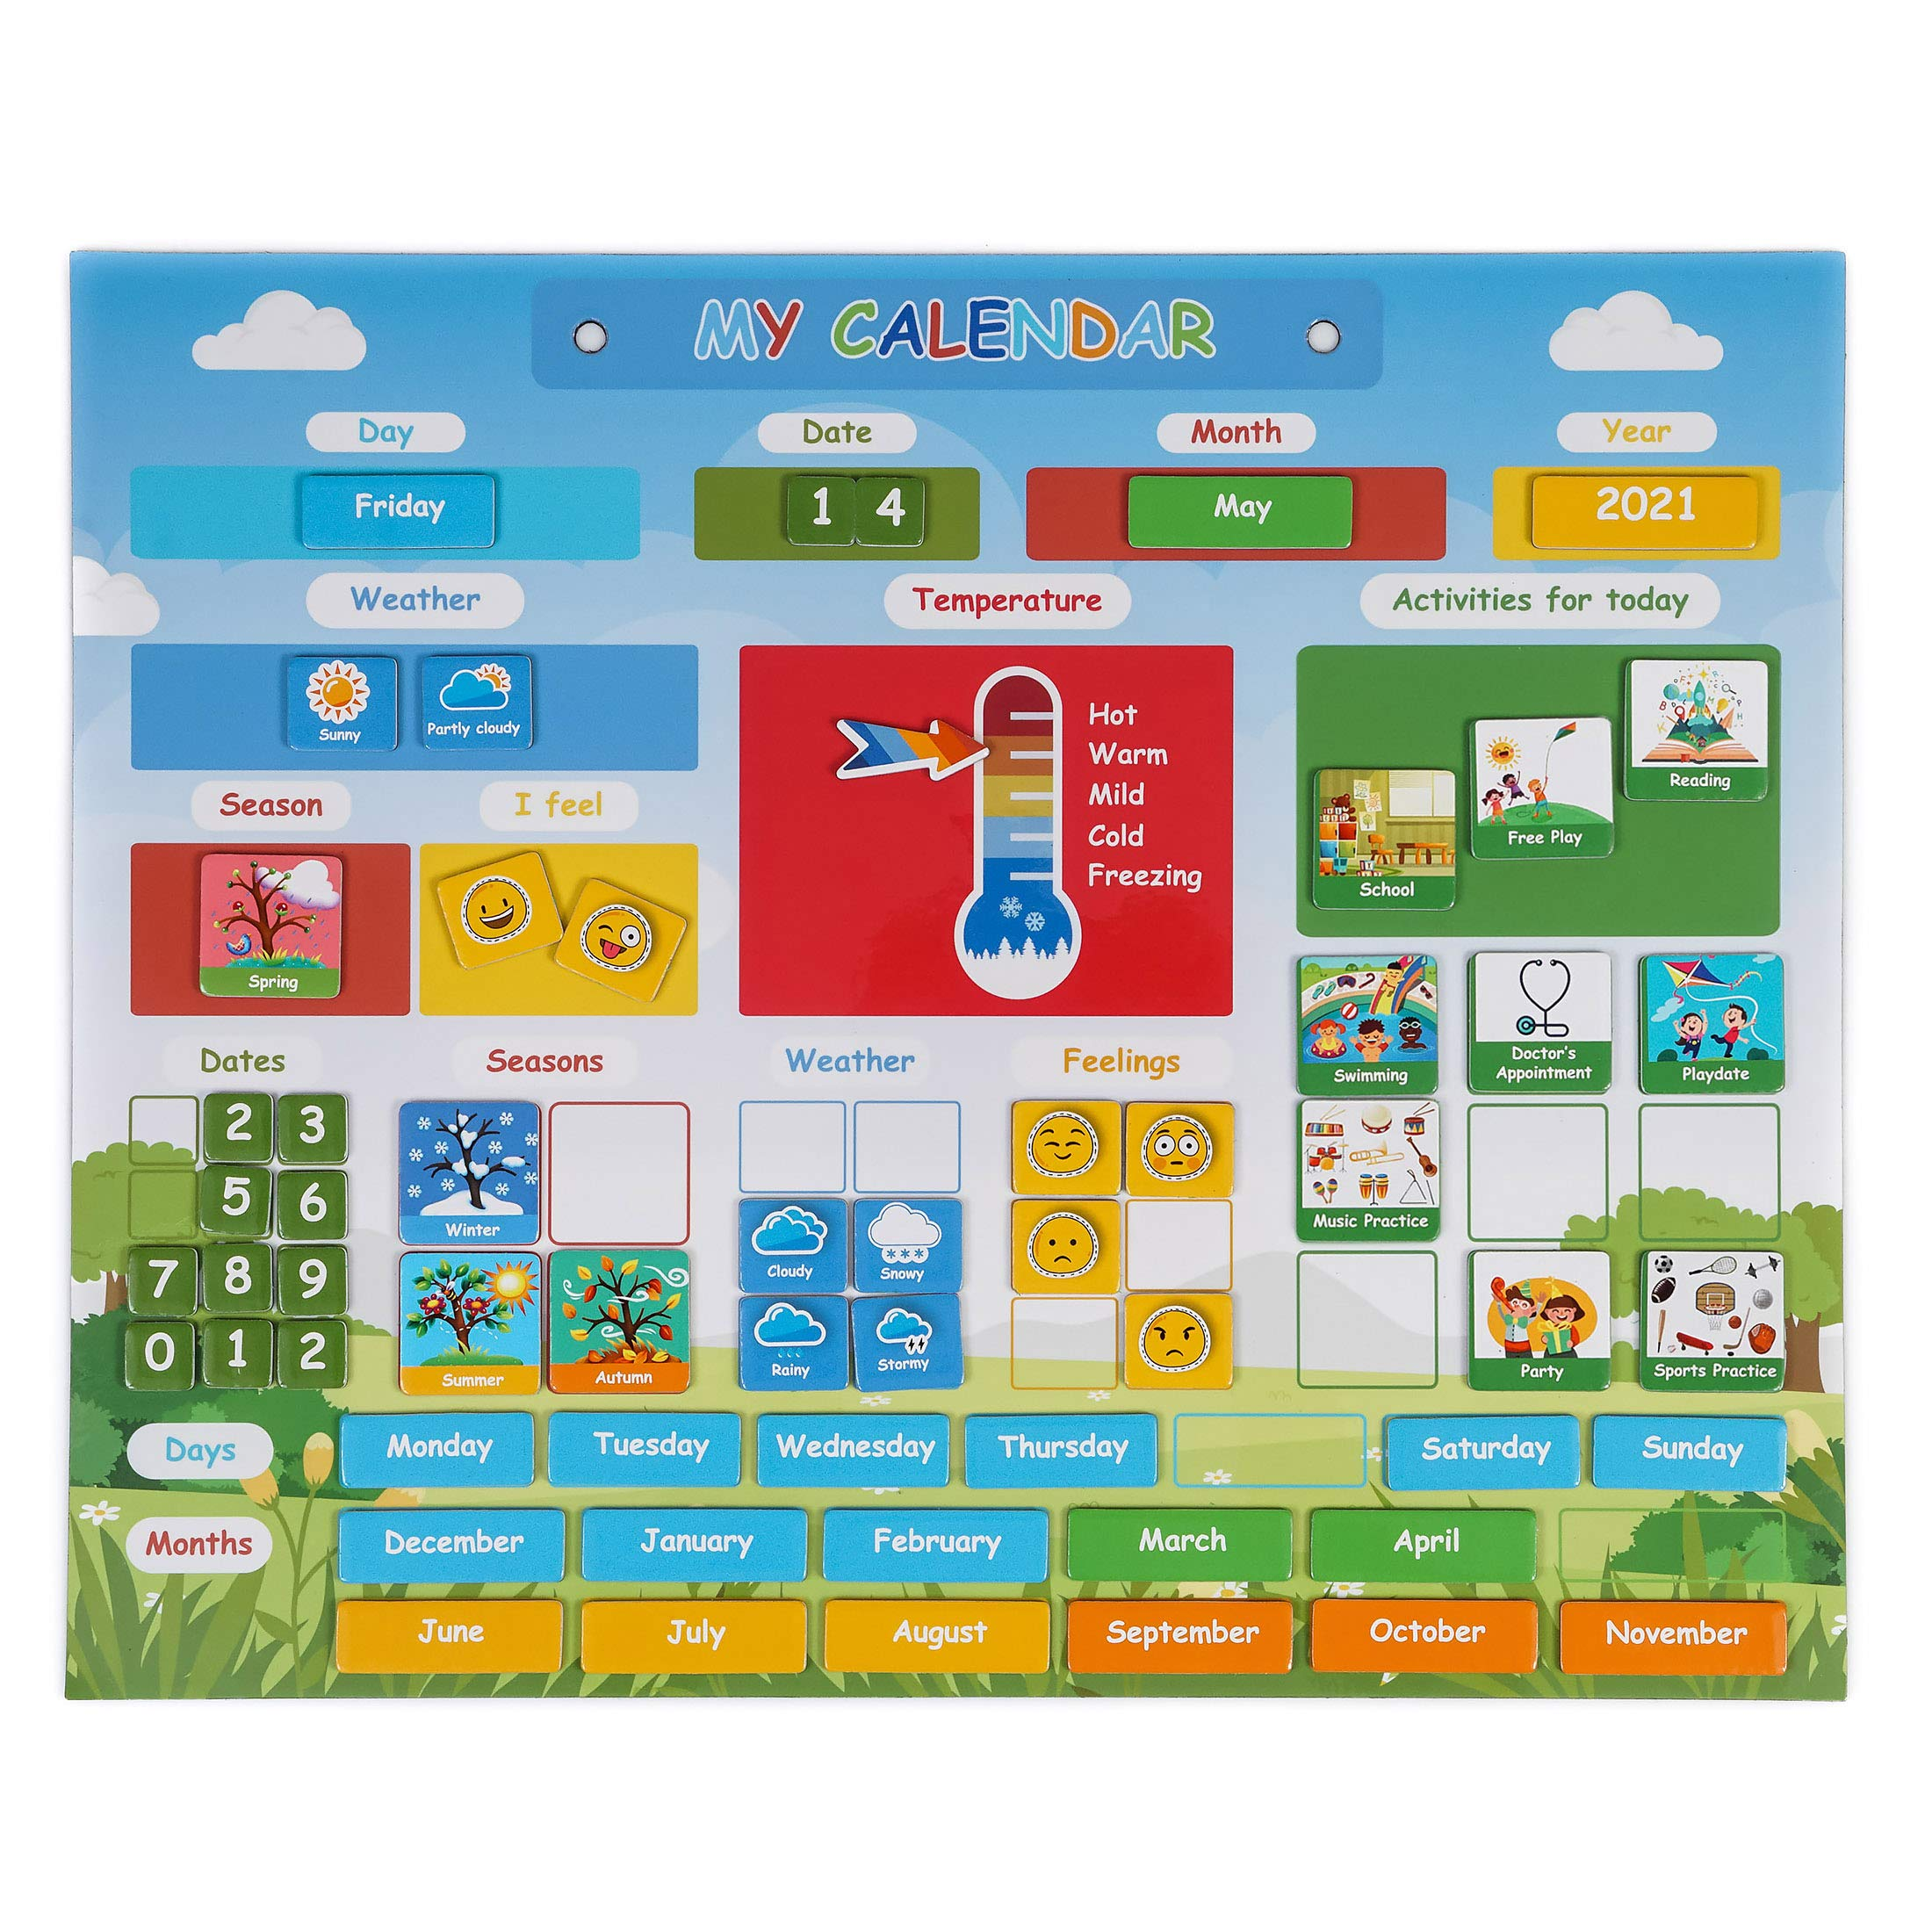 Simply Magic Kids Calendar - My First Daily Magnetic Calendar for Kids - Amazing Preschool Learning Toys for Toddlers - Preschool Classroom Calendar for Fridge or Wall - Weather Chart, Feelings, Days